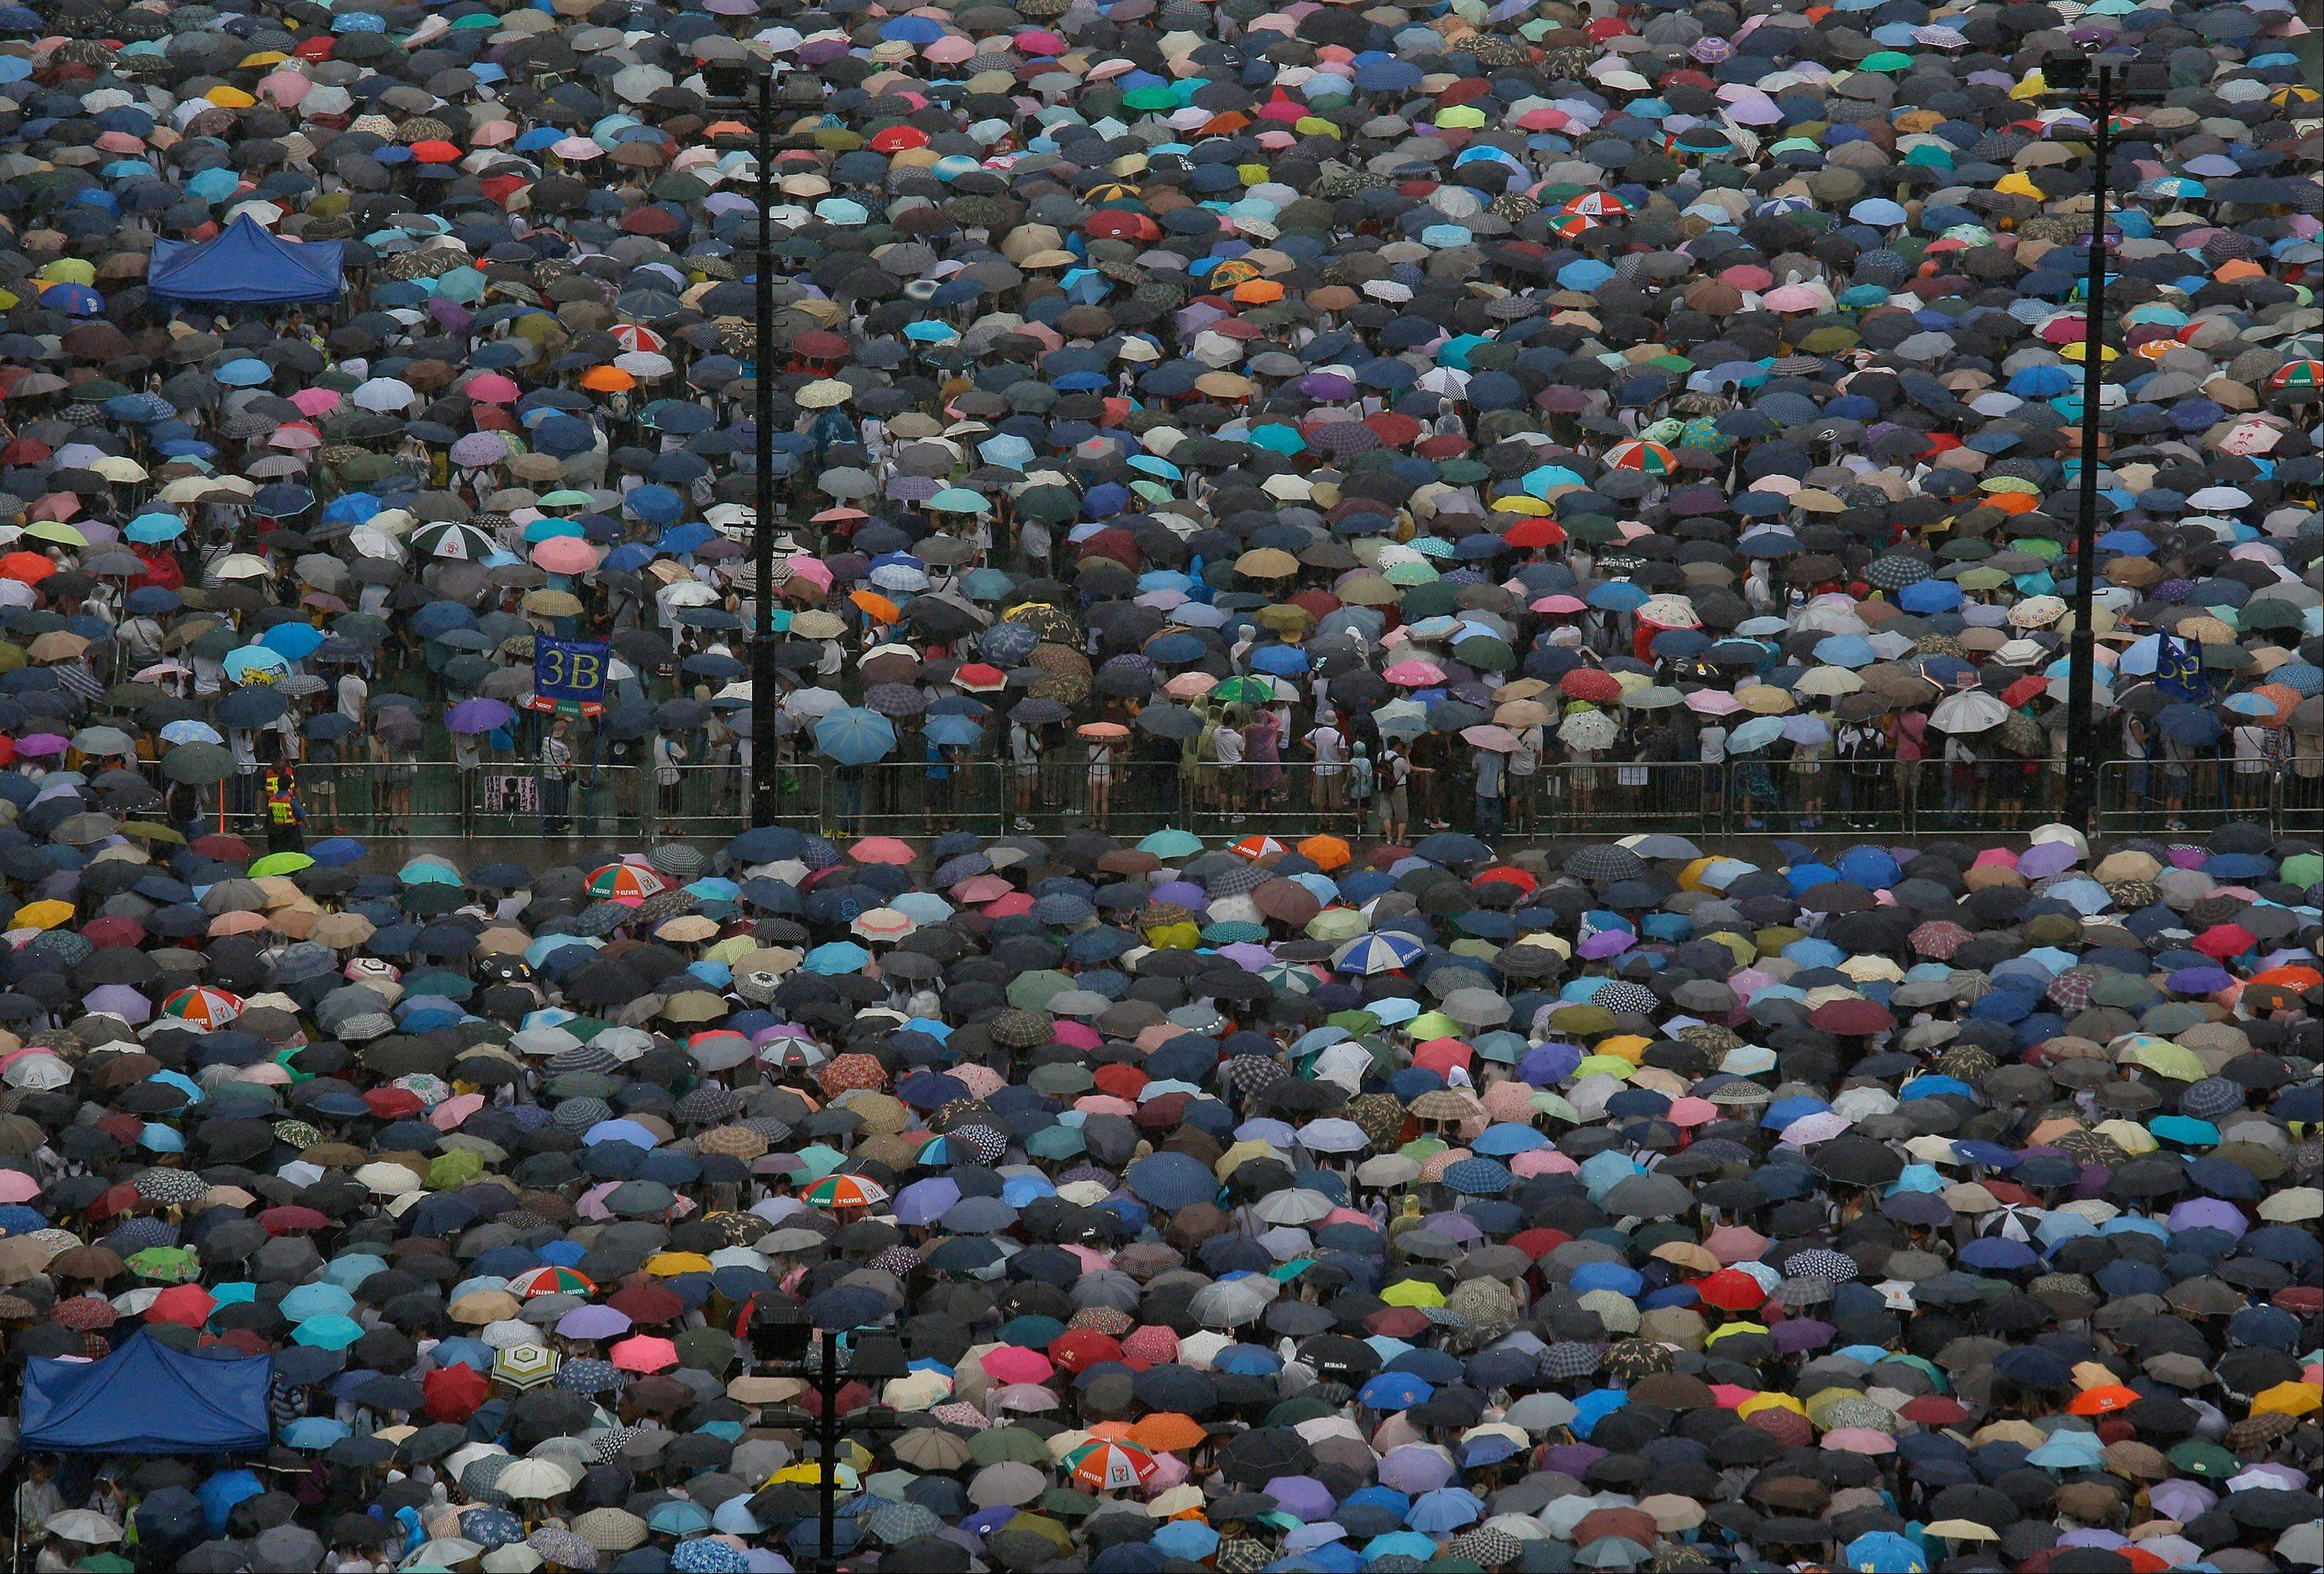 Tens of thousands of Hong Kong residents gather at Victoria Park before an annual pro-democracy protest in Hong Kong Monday. The protesters demanded their widely disliked Beijing-backed leader resign and pressing for promised democratic reforms so they can choose their own top representative.